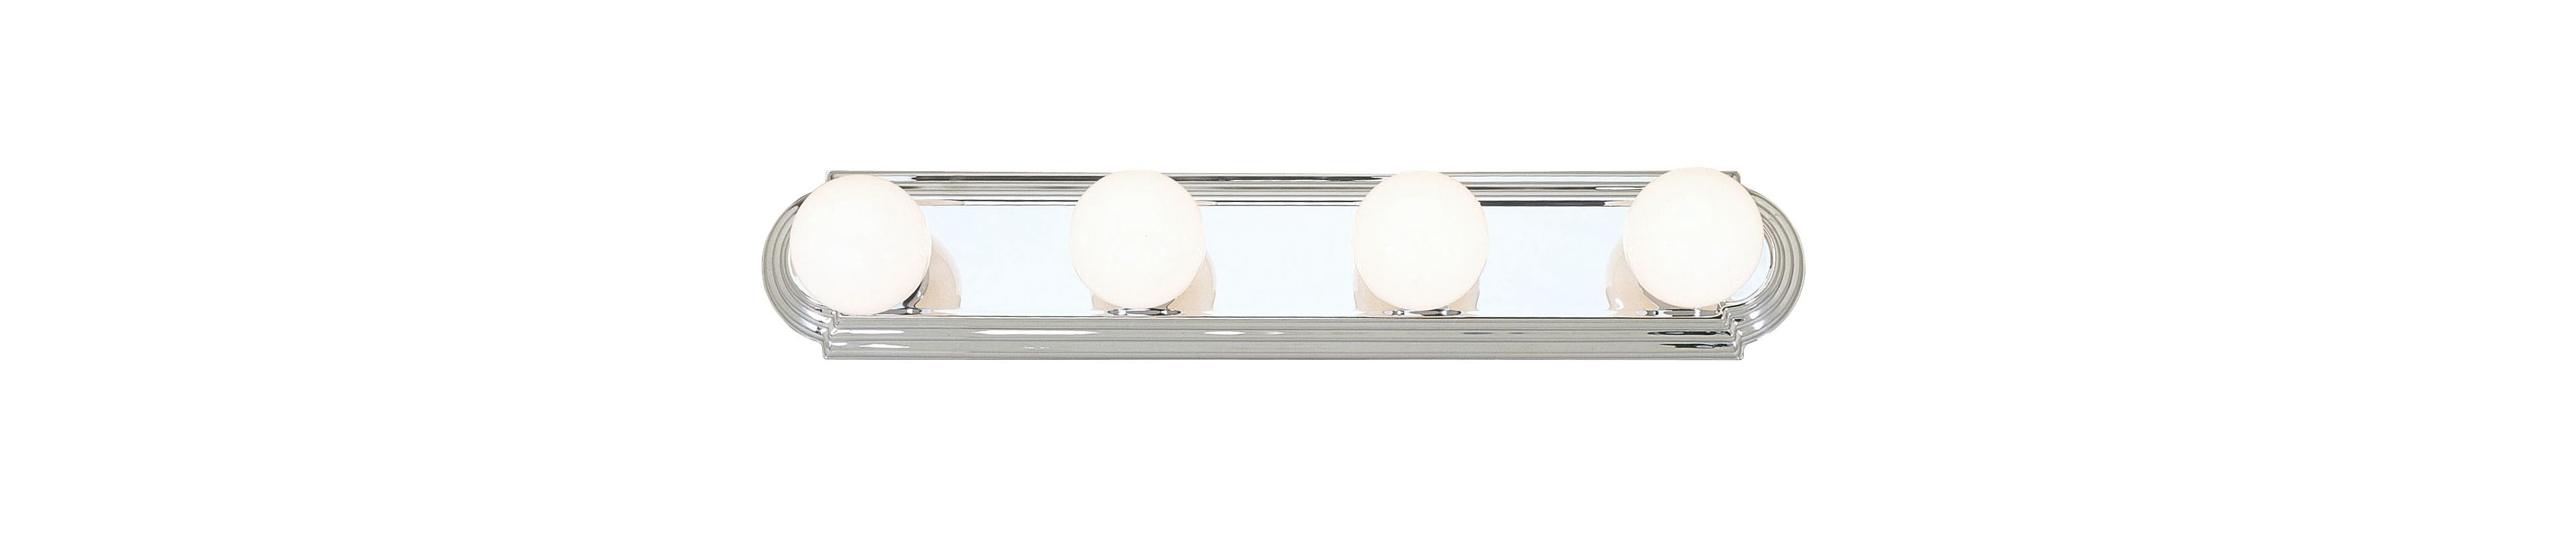 Livex Lighting 1144 Bath Basics 4 Light Bathroom Vanity Strip Chrome